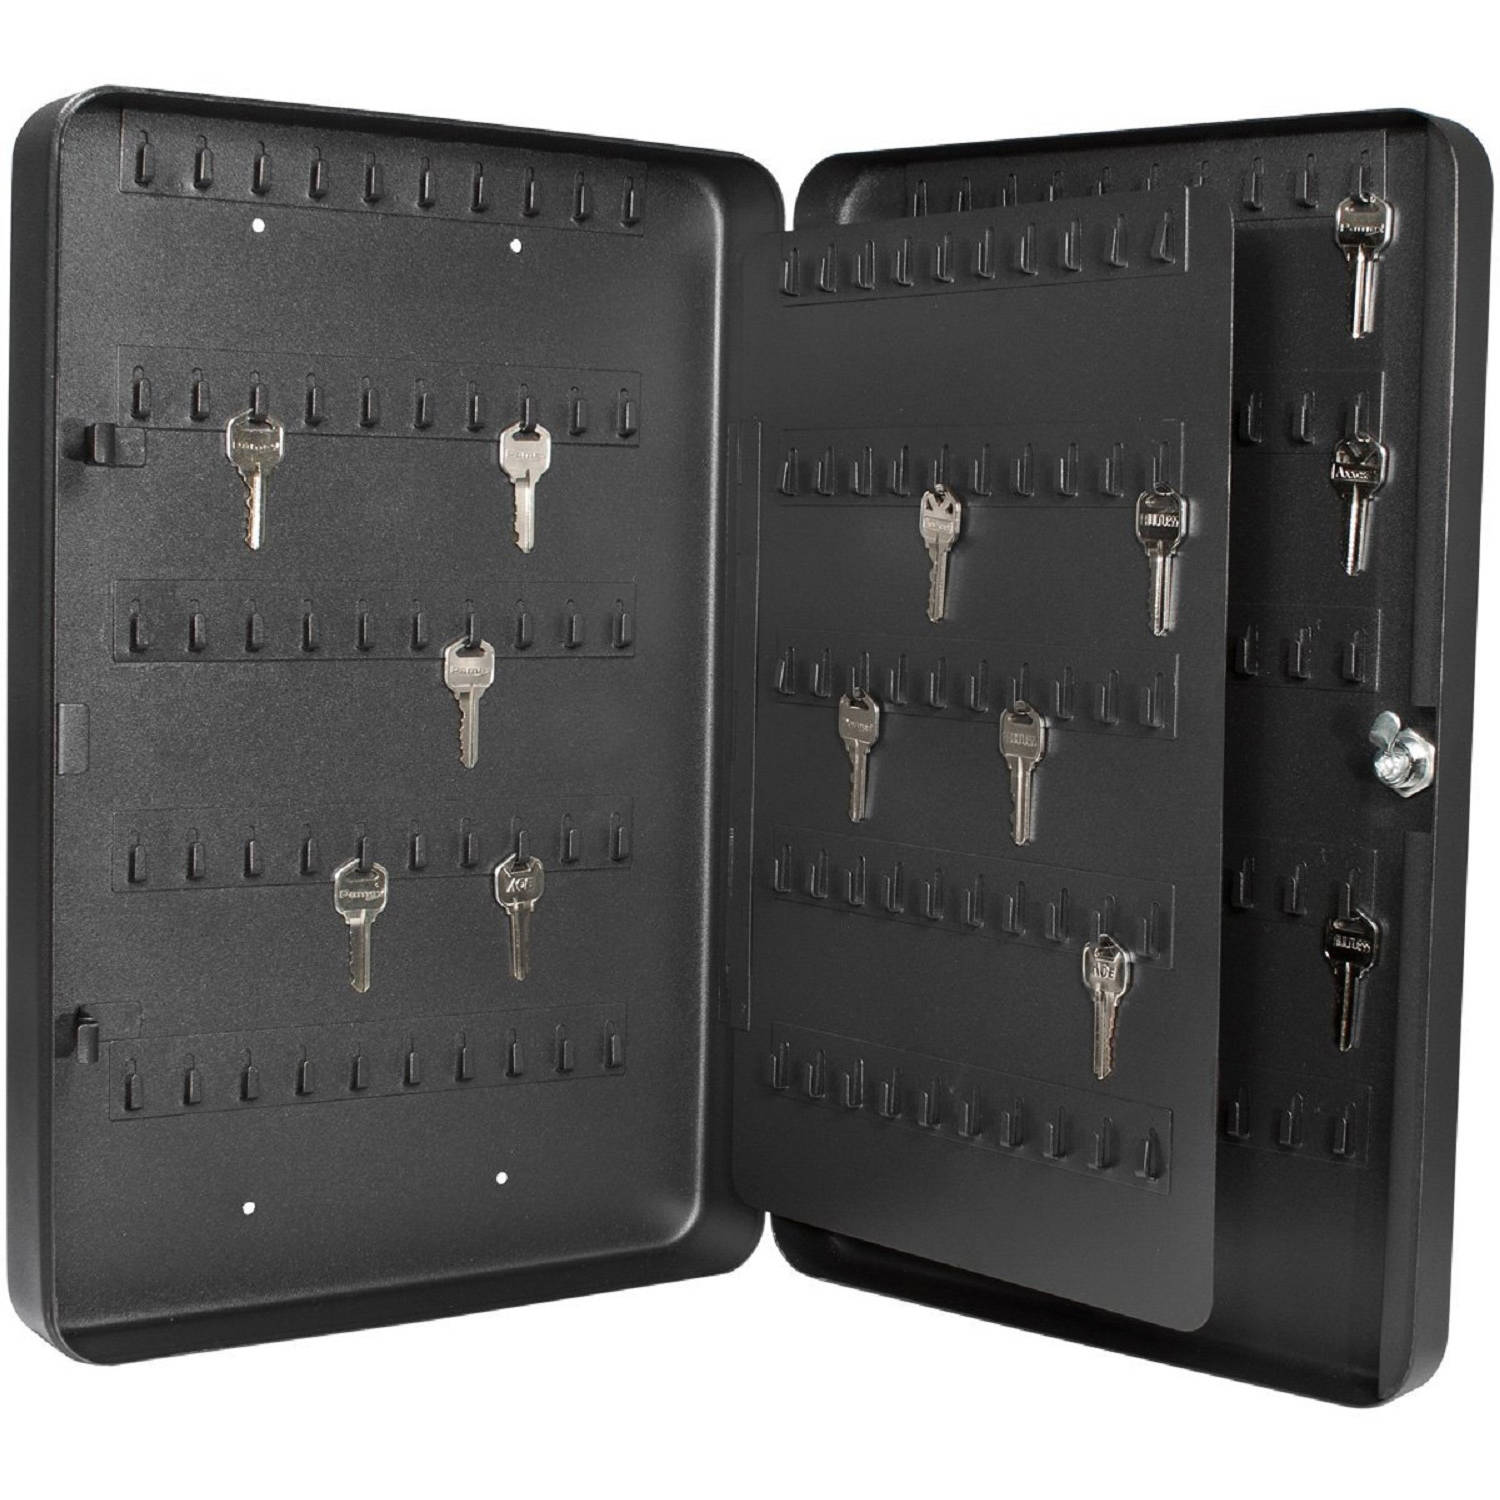 Barska 200 Keys Heavy Duty Lock Box with Key Lock, Black